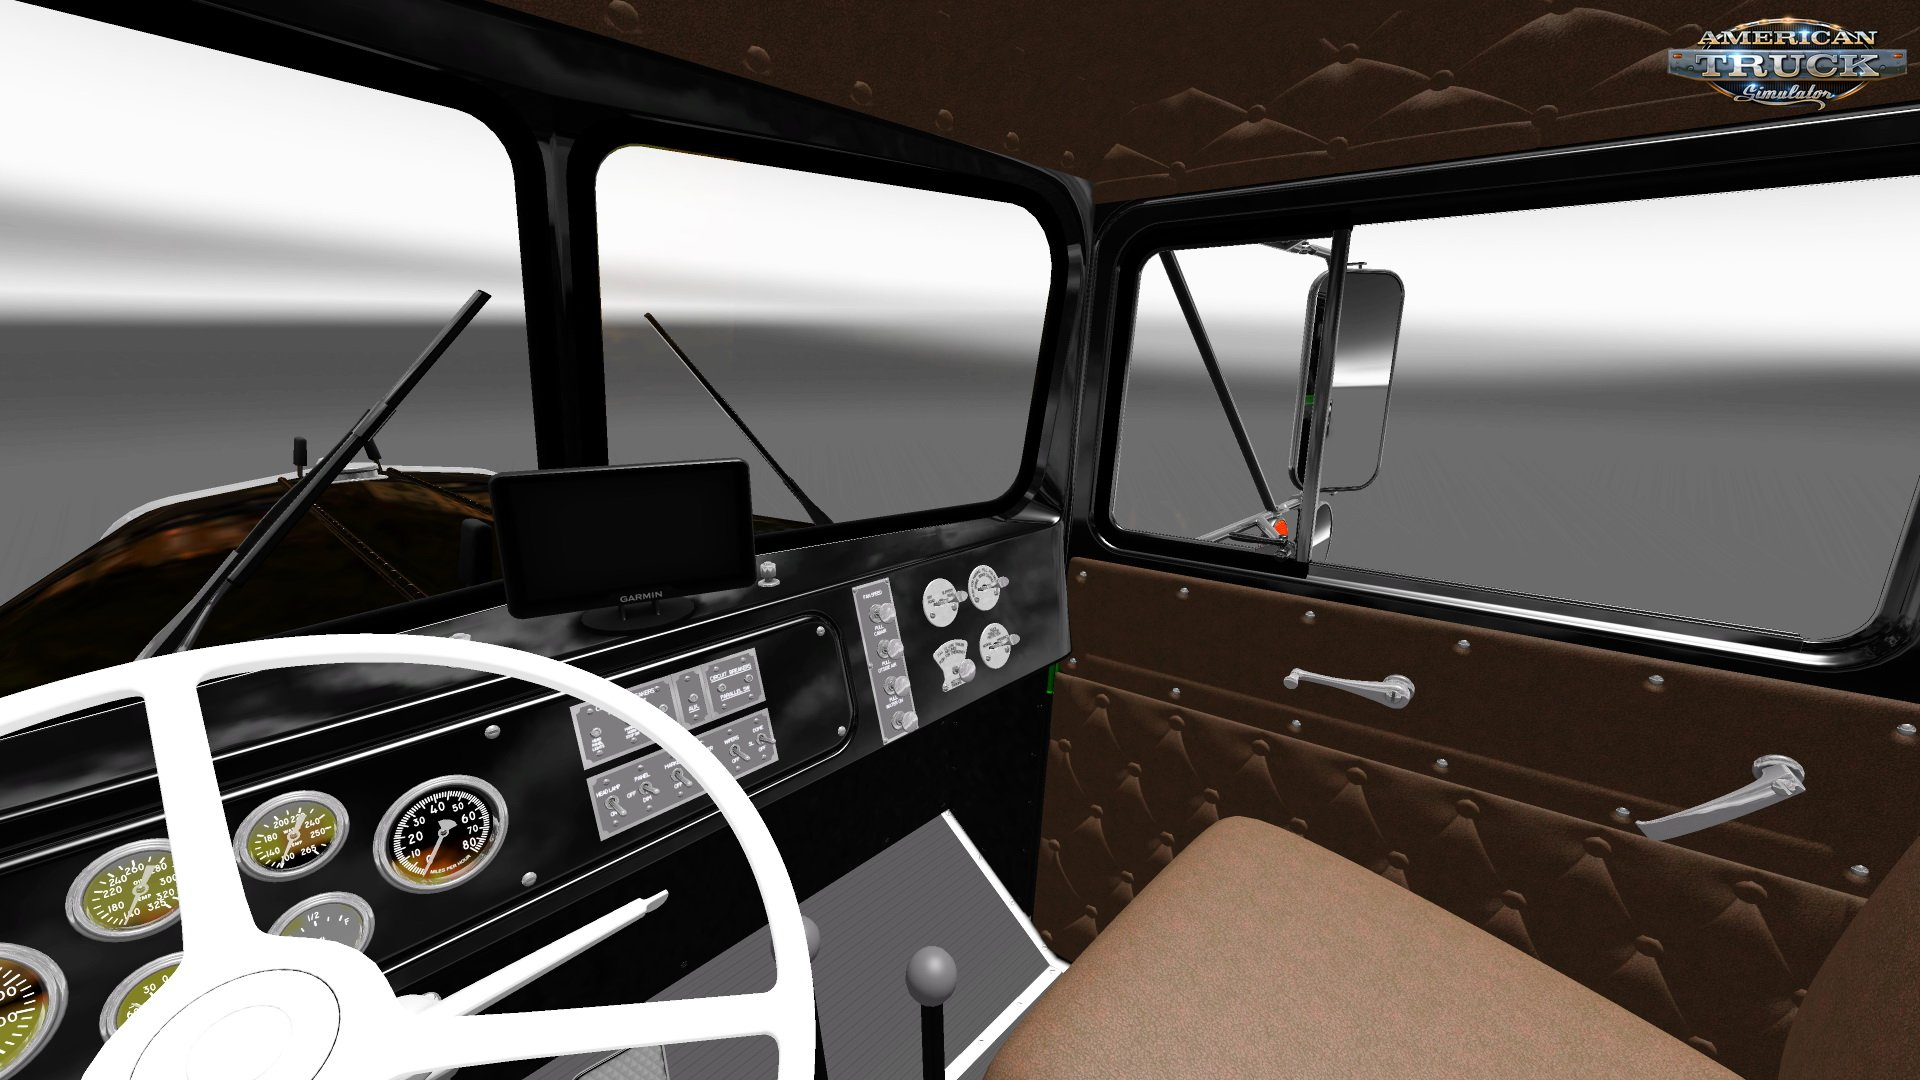 Kenworth 521 + Interior v1.1 (v1.5.x)